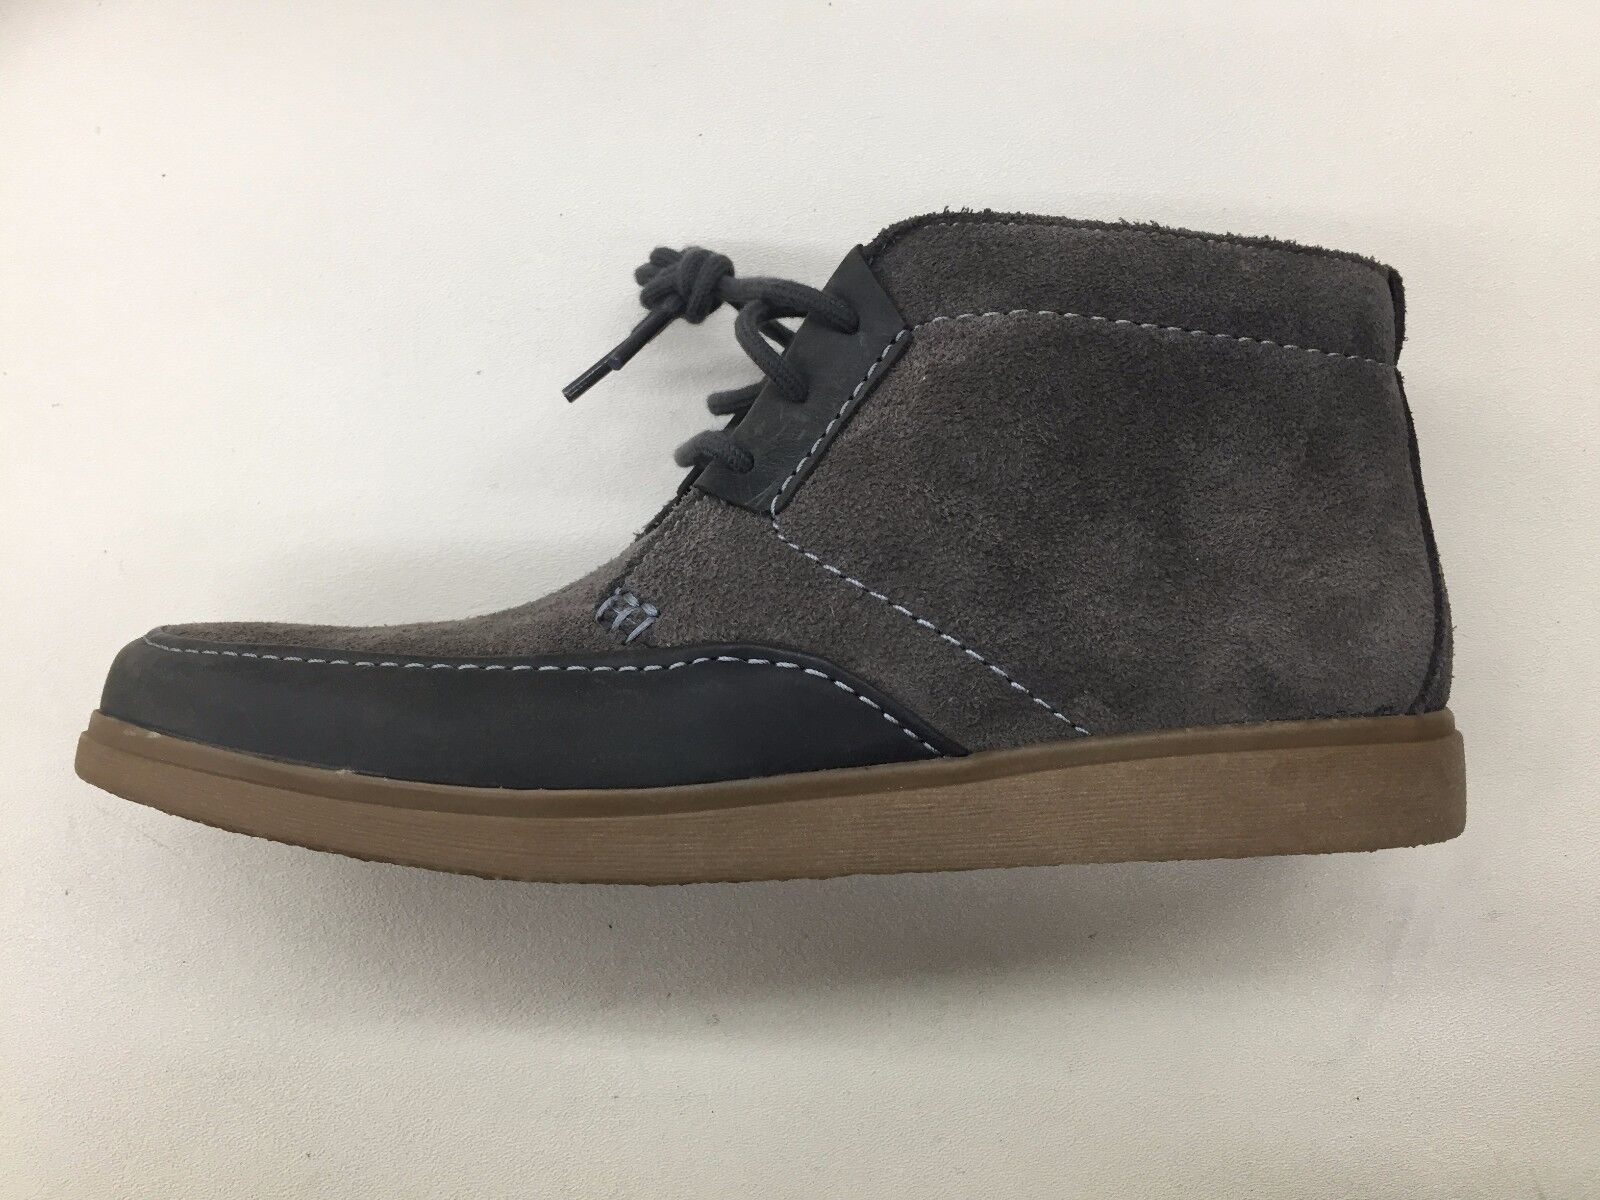 Clarks Navy Original Brayer Sport Moccasin Navy Clarks Marine Suede Mens Shoes 63307 1704-97 e859f7